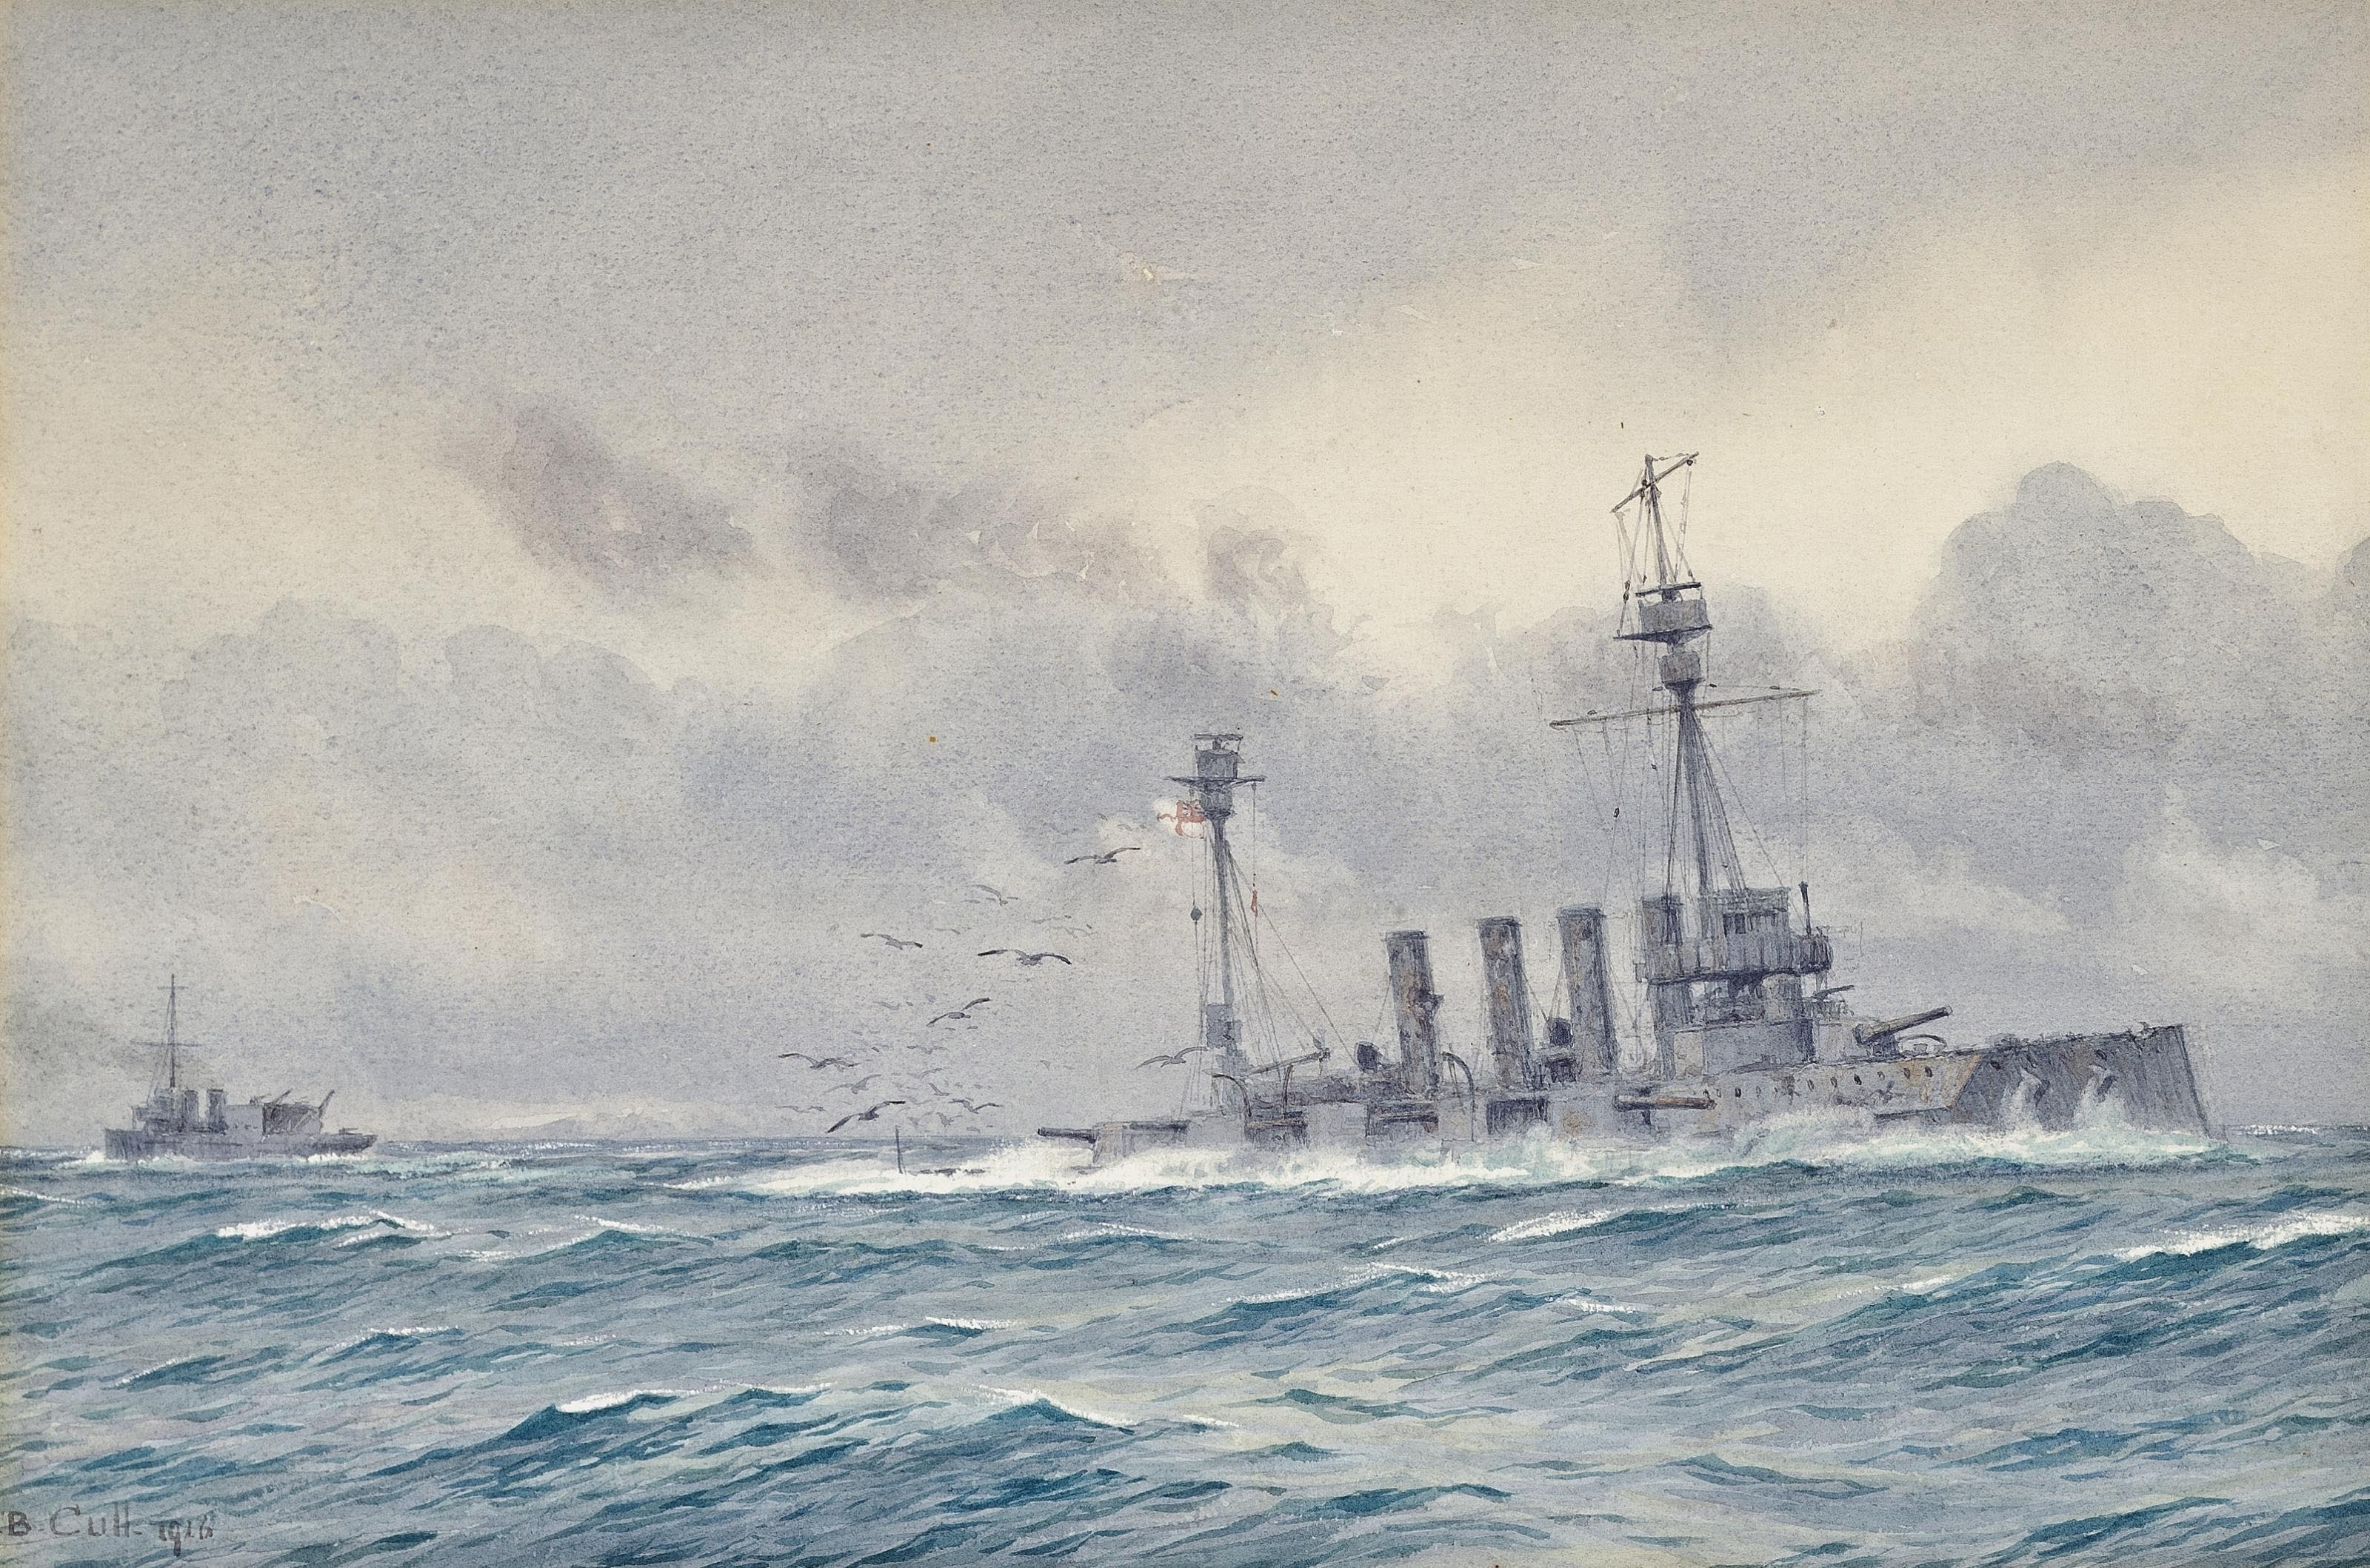 The sinking of H.M.S. Warrior after the Battle of Jutland